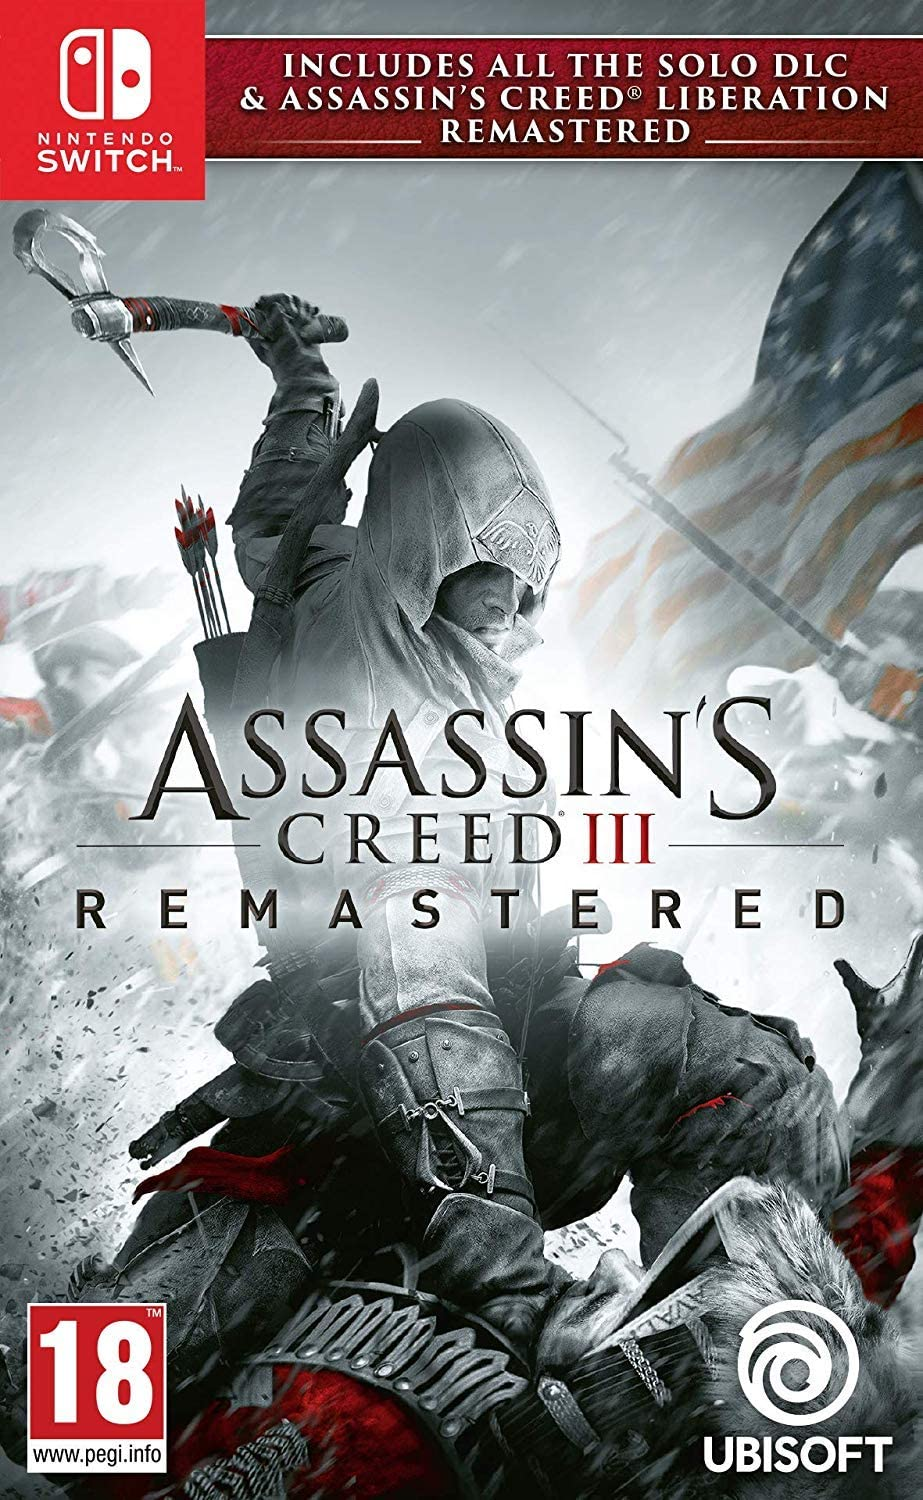 Assassin\'s Creed 3 + Assassin\'s Creed Liberation Remastered Nintendo Switch